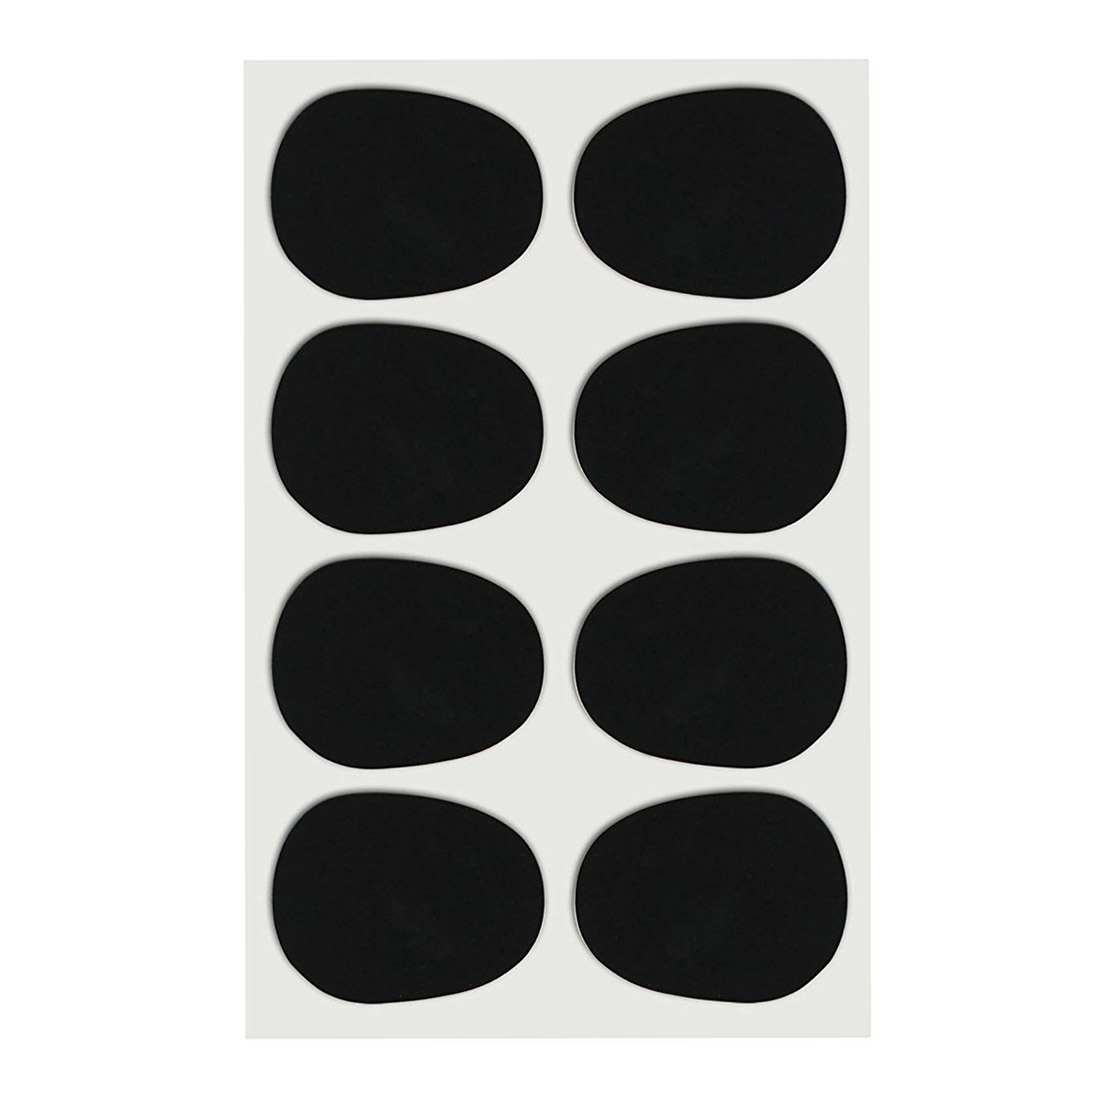 Brand New 16pcs Set 0 8mm Black Alto tenor Sax Clarinet Mouthpiece Patches Pads Cushions in Parts Accessories from Sports Entertainment